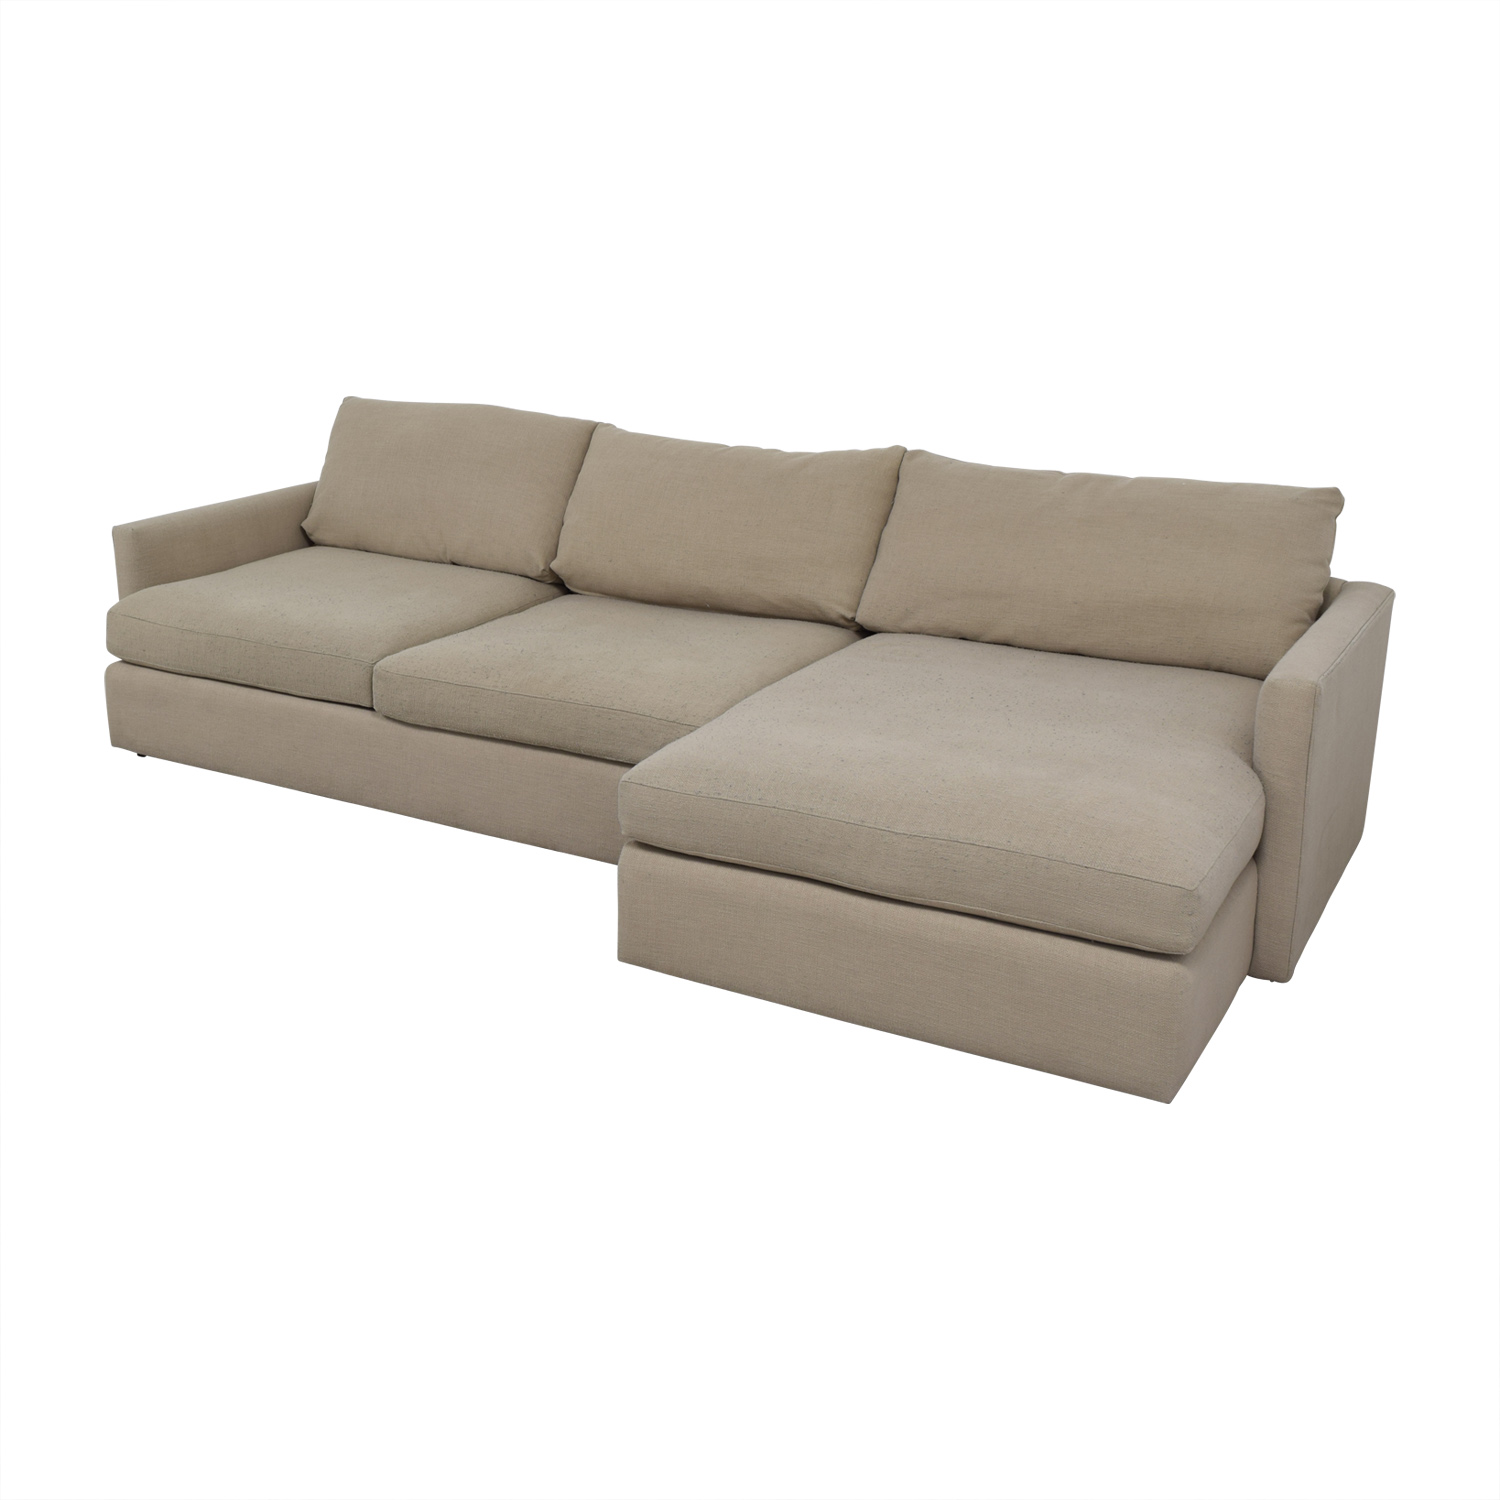 https://images.furnishare.com/31138/crate-and-barrel/sofas/sectionals/used-crate-and-barrel-lounge-ii-beige-sectional.jpeg